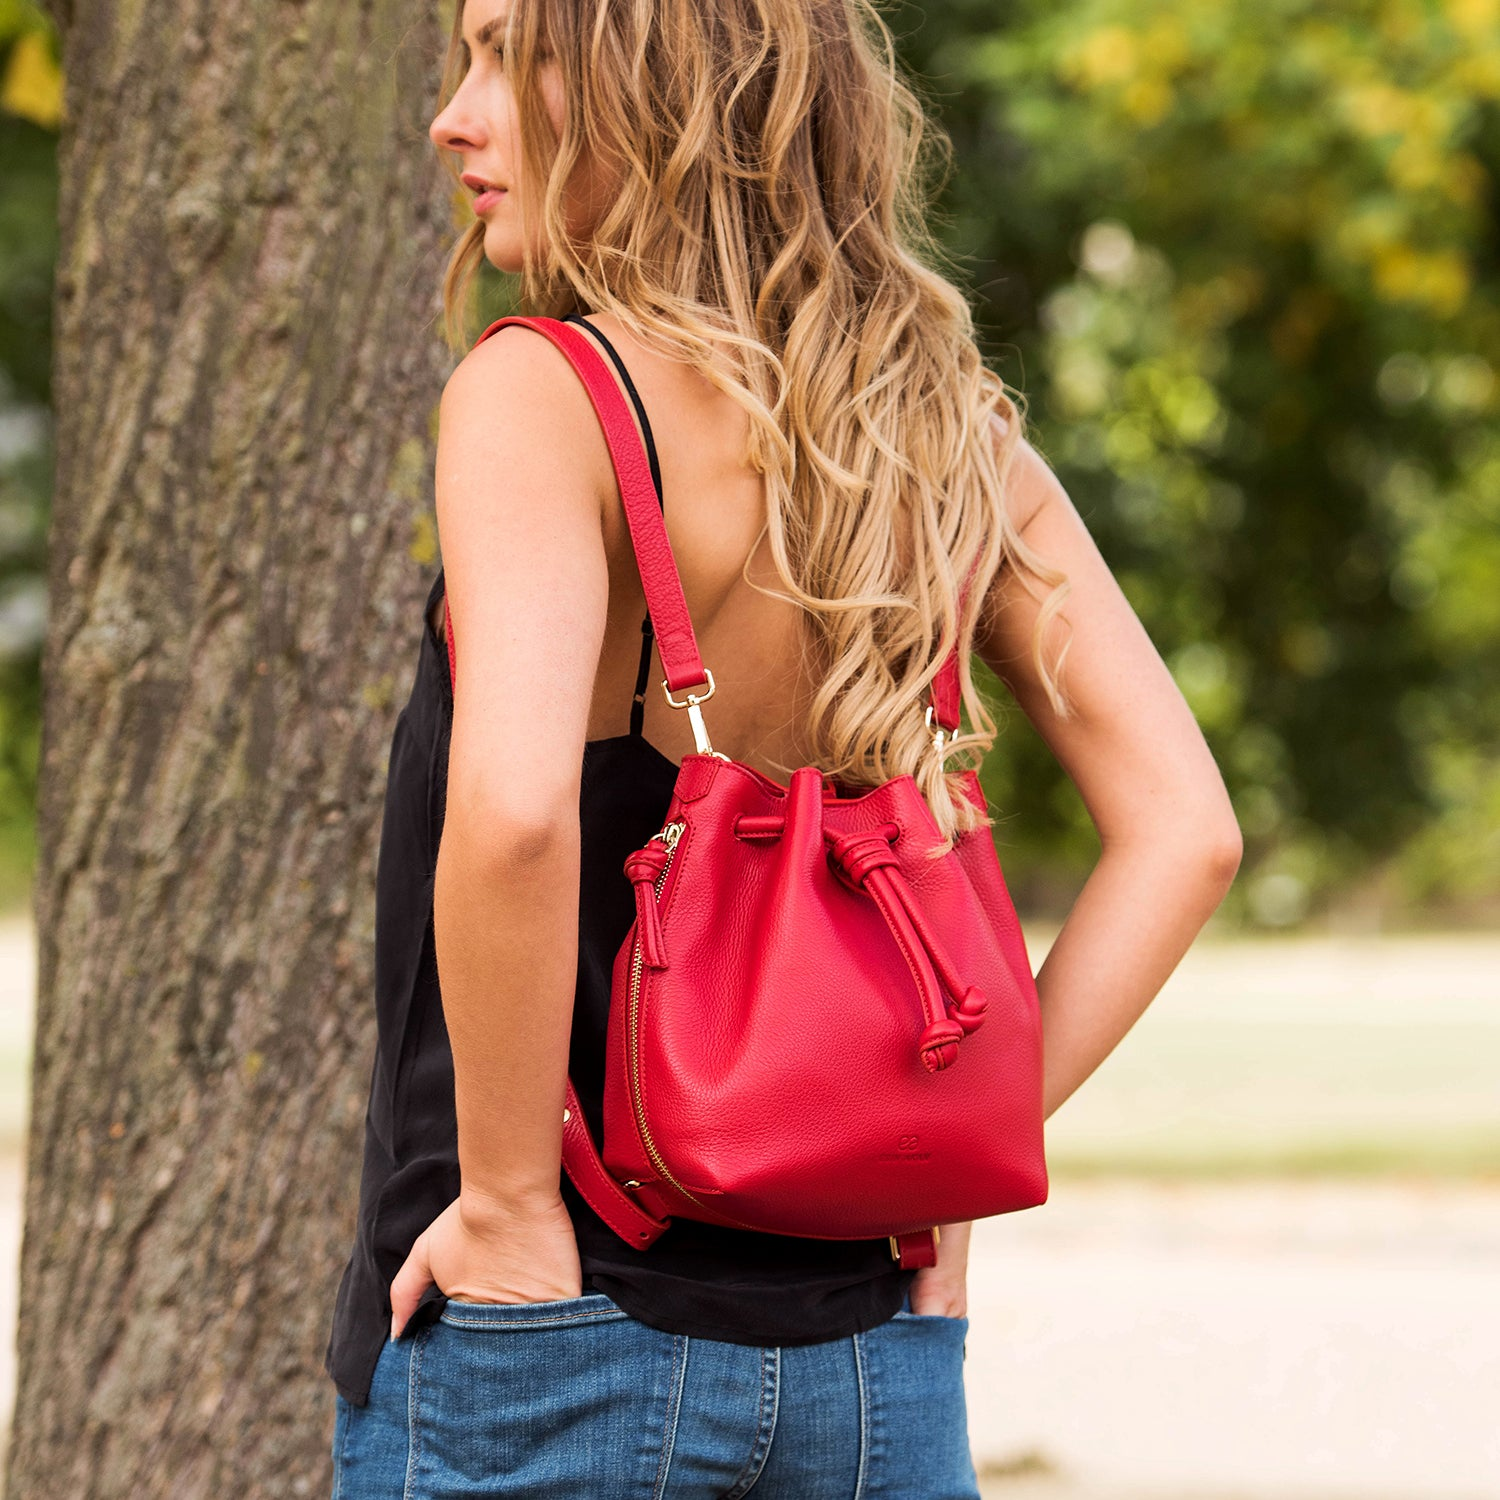 Model wearing a convertible medium leather bucket crossbody bag in sparkly navy as a backpack.